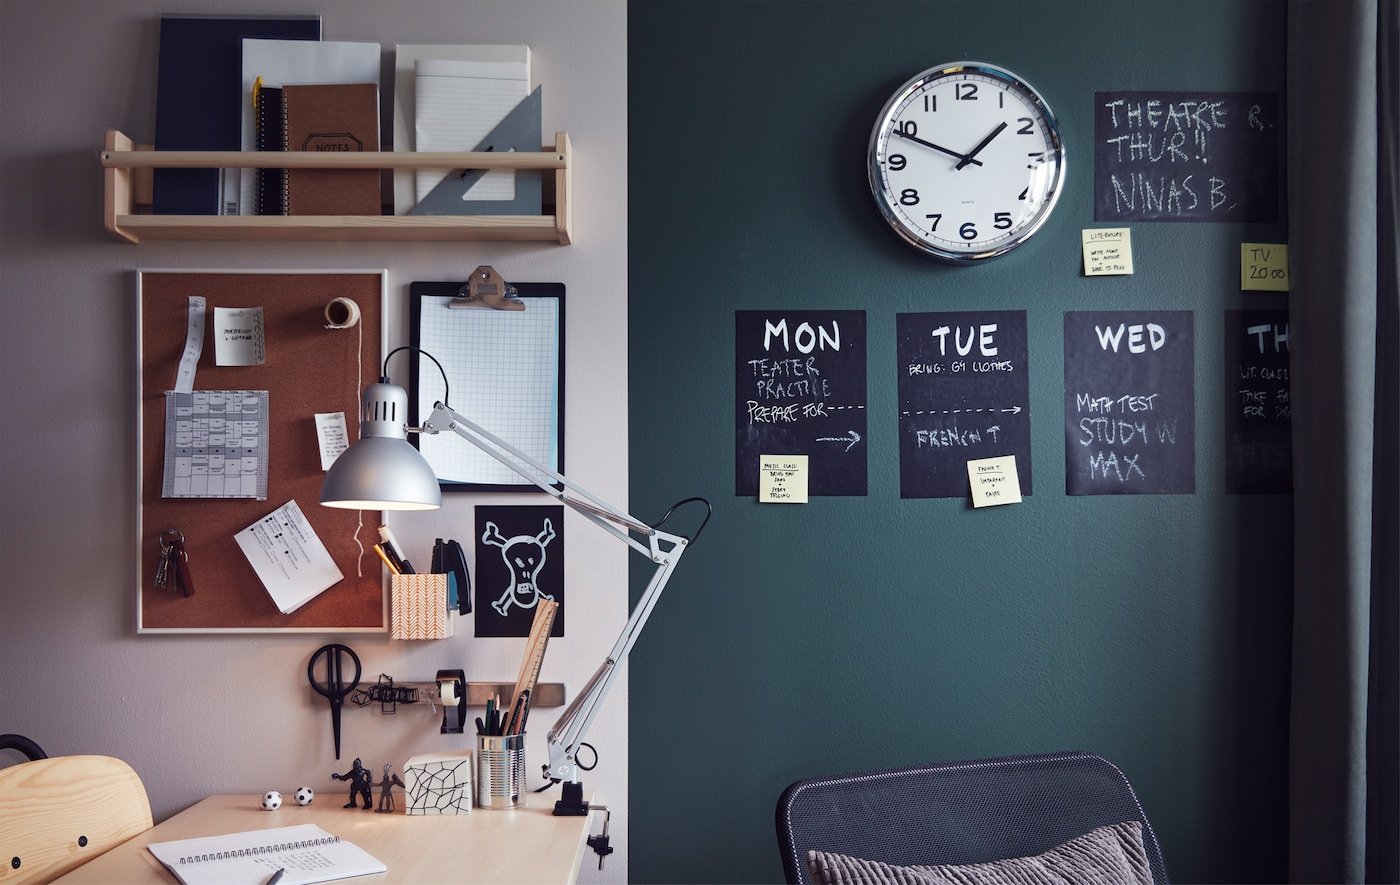 A teen room study area with a desk, work lamp, shelves, clipboard, clock, noticeboard and weekly planner on the wall.